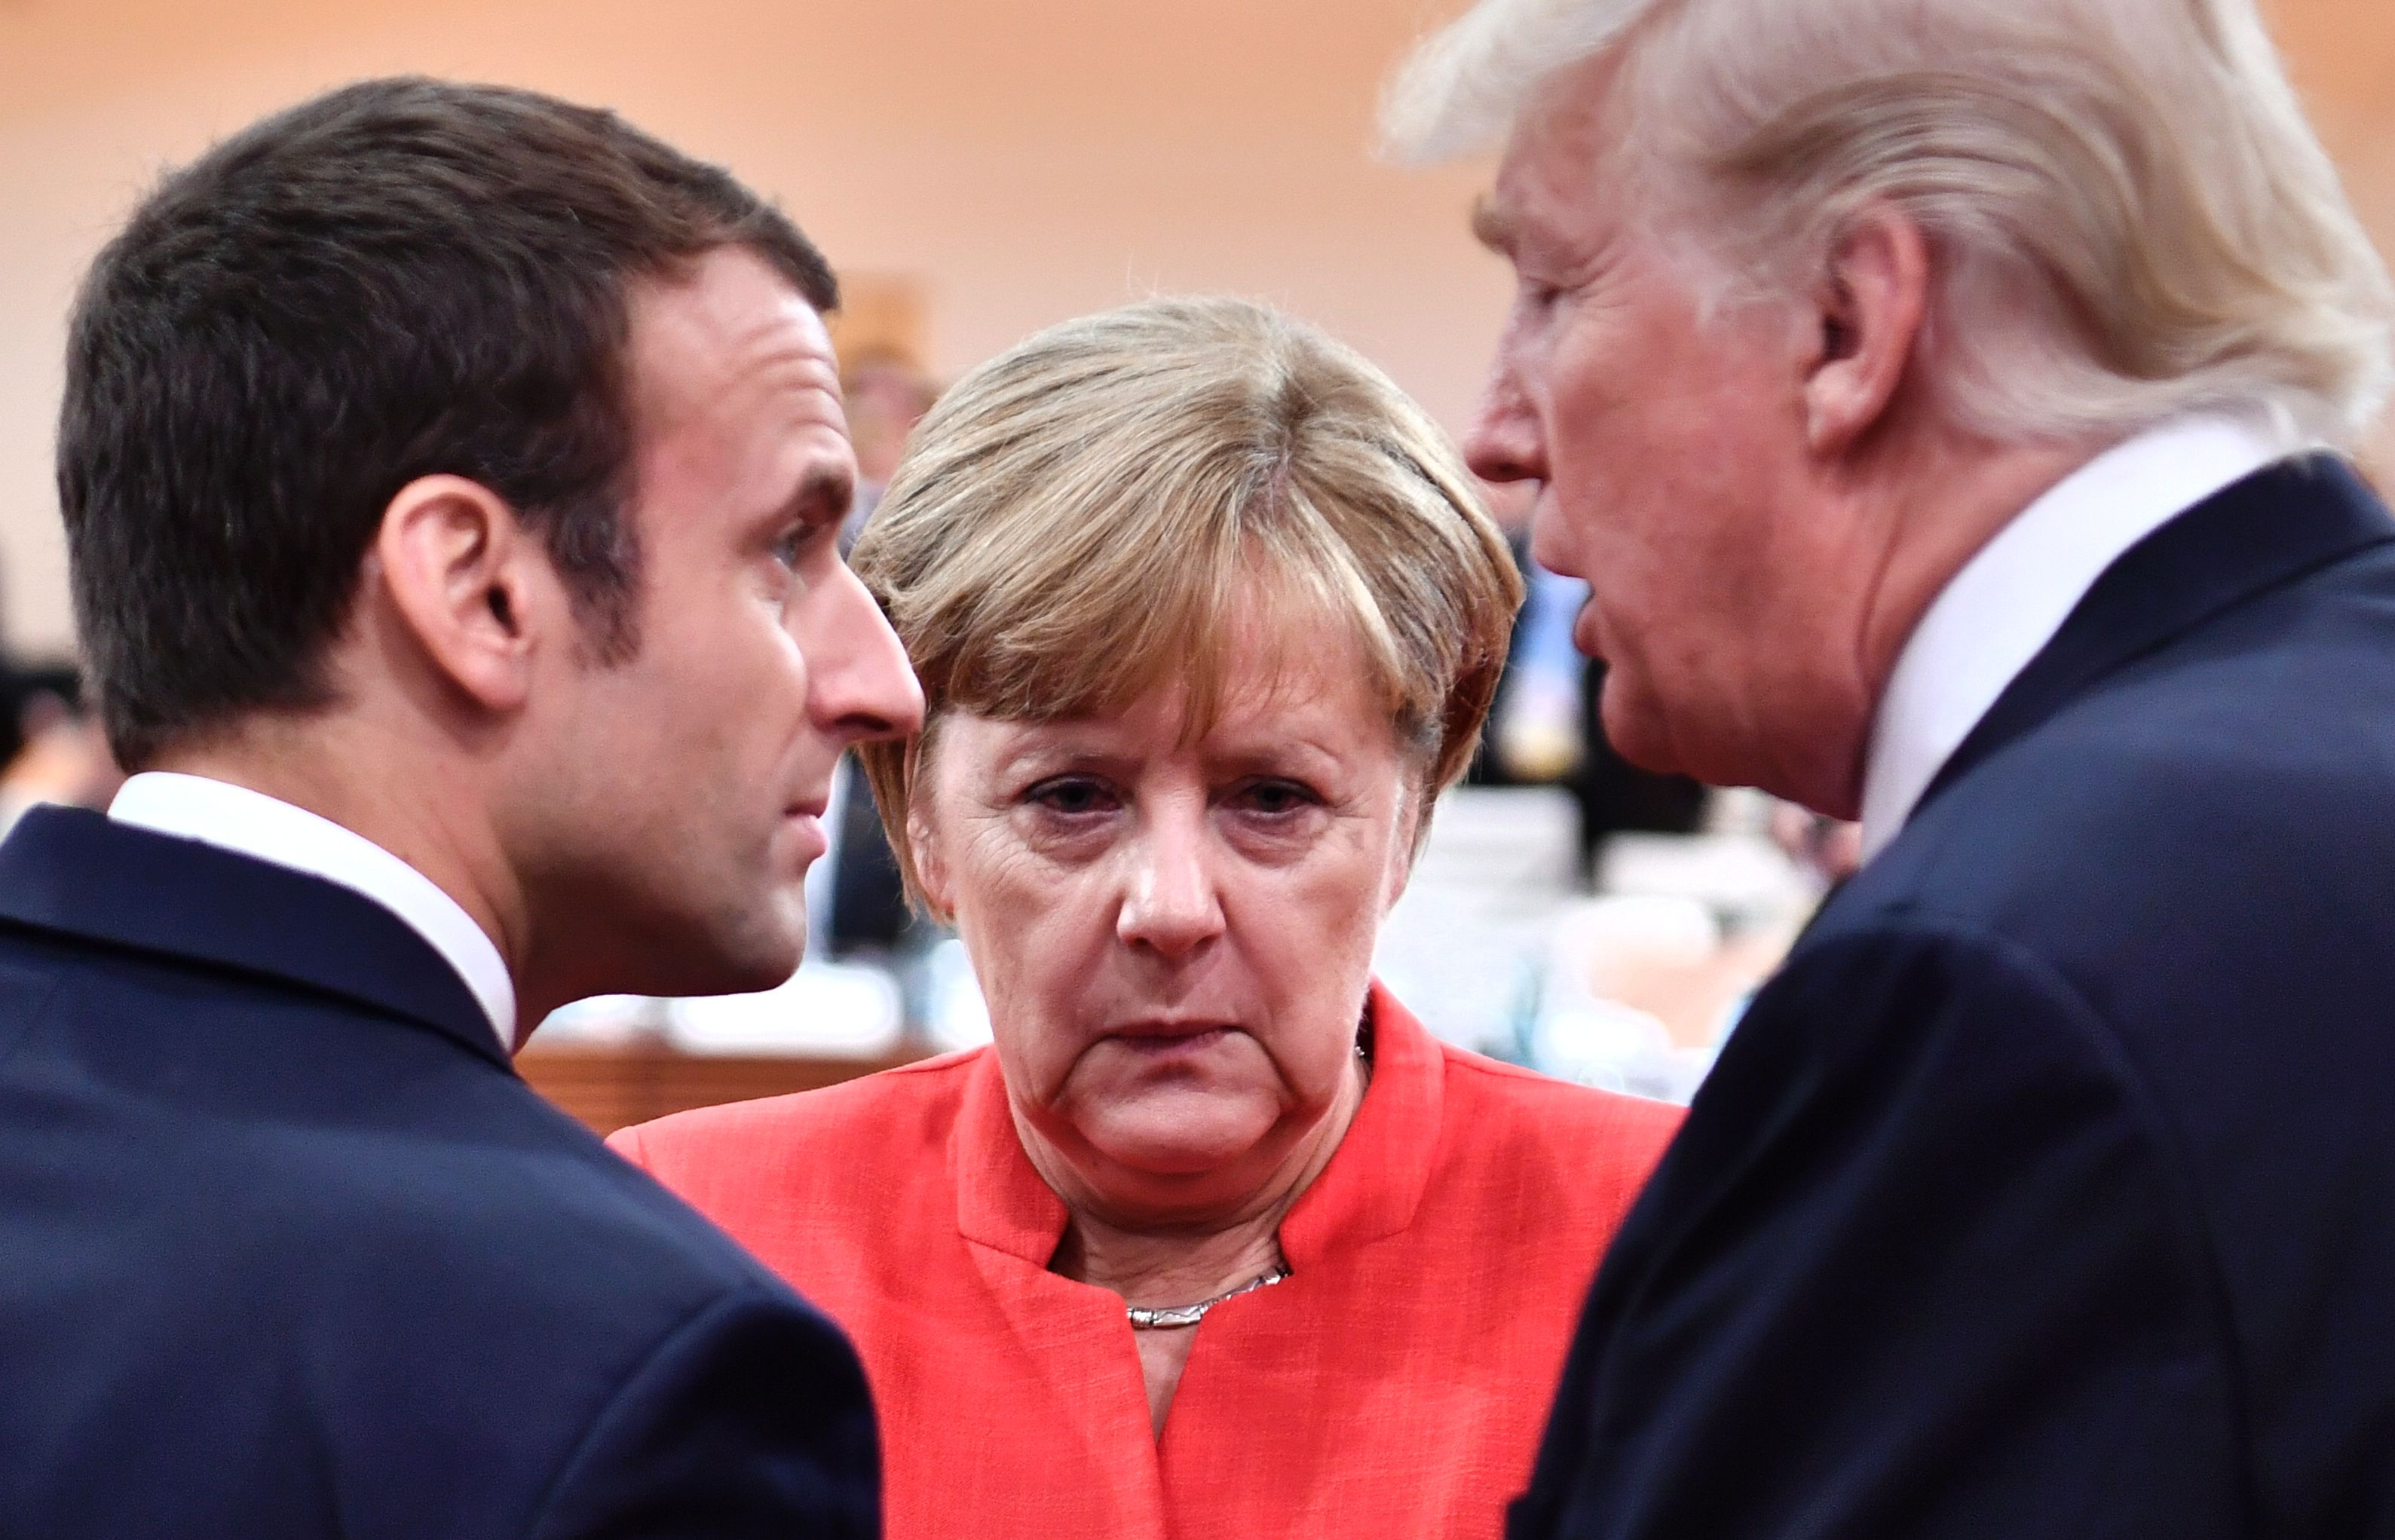 French President Emmanuel Macron, German Chancellor Angela Merkel and U.S. President Donald Trump confer at the start of the first working session of the G20 meeting in Hamburg, Germany, on July 7, 2017.